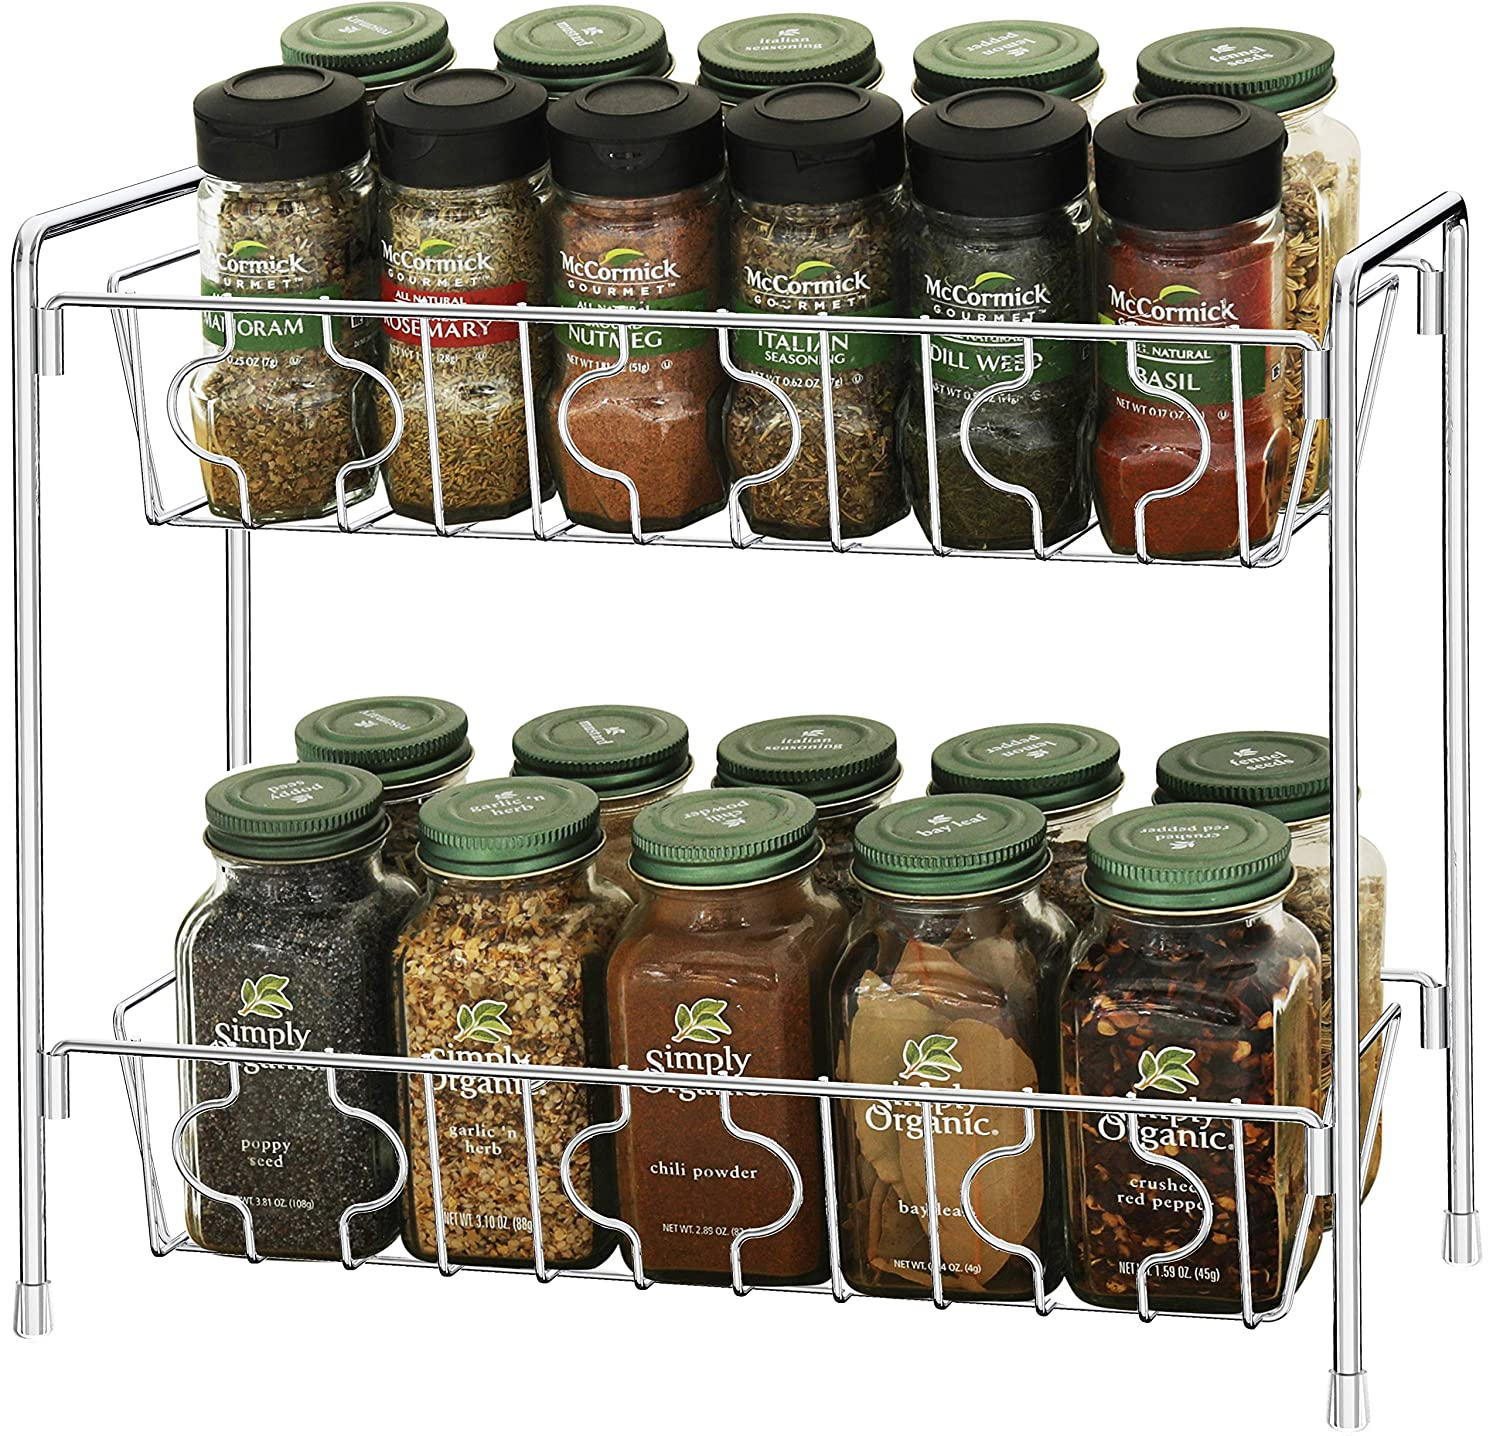 SimpleHouseware 2-Tier Kitchen/Bathroom Counter Organizer Rack, Chrome Simple Houseware CO-025-1